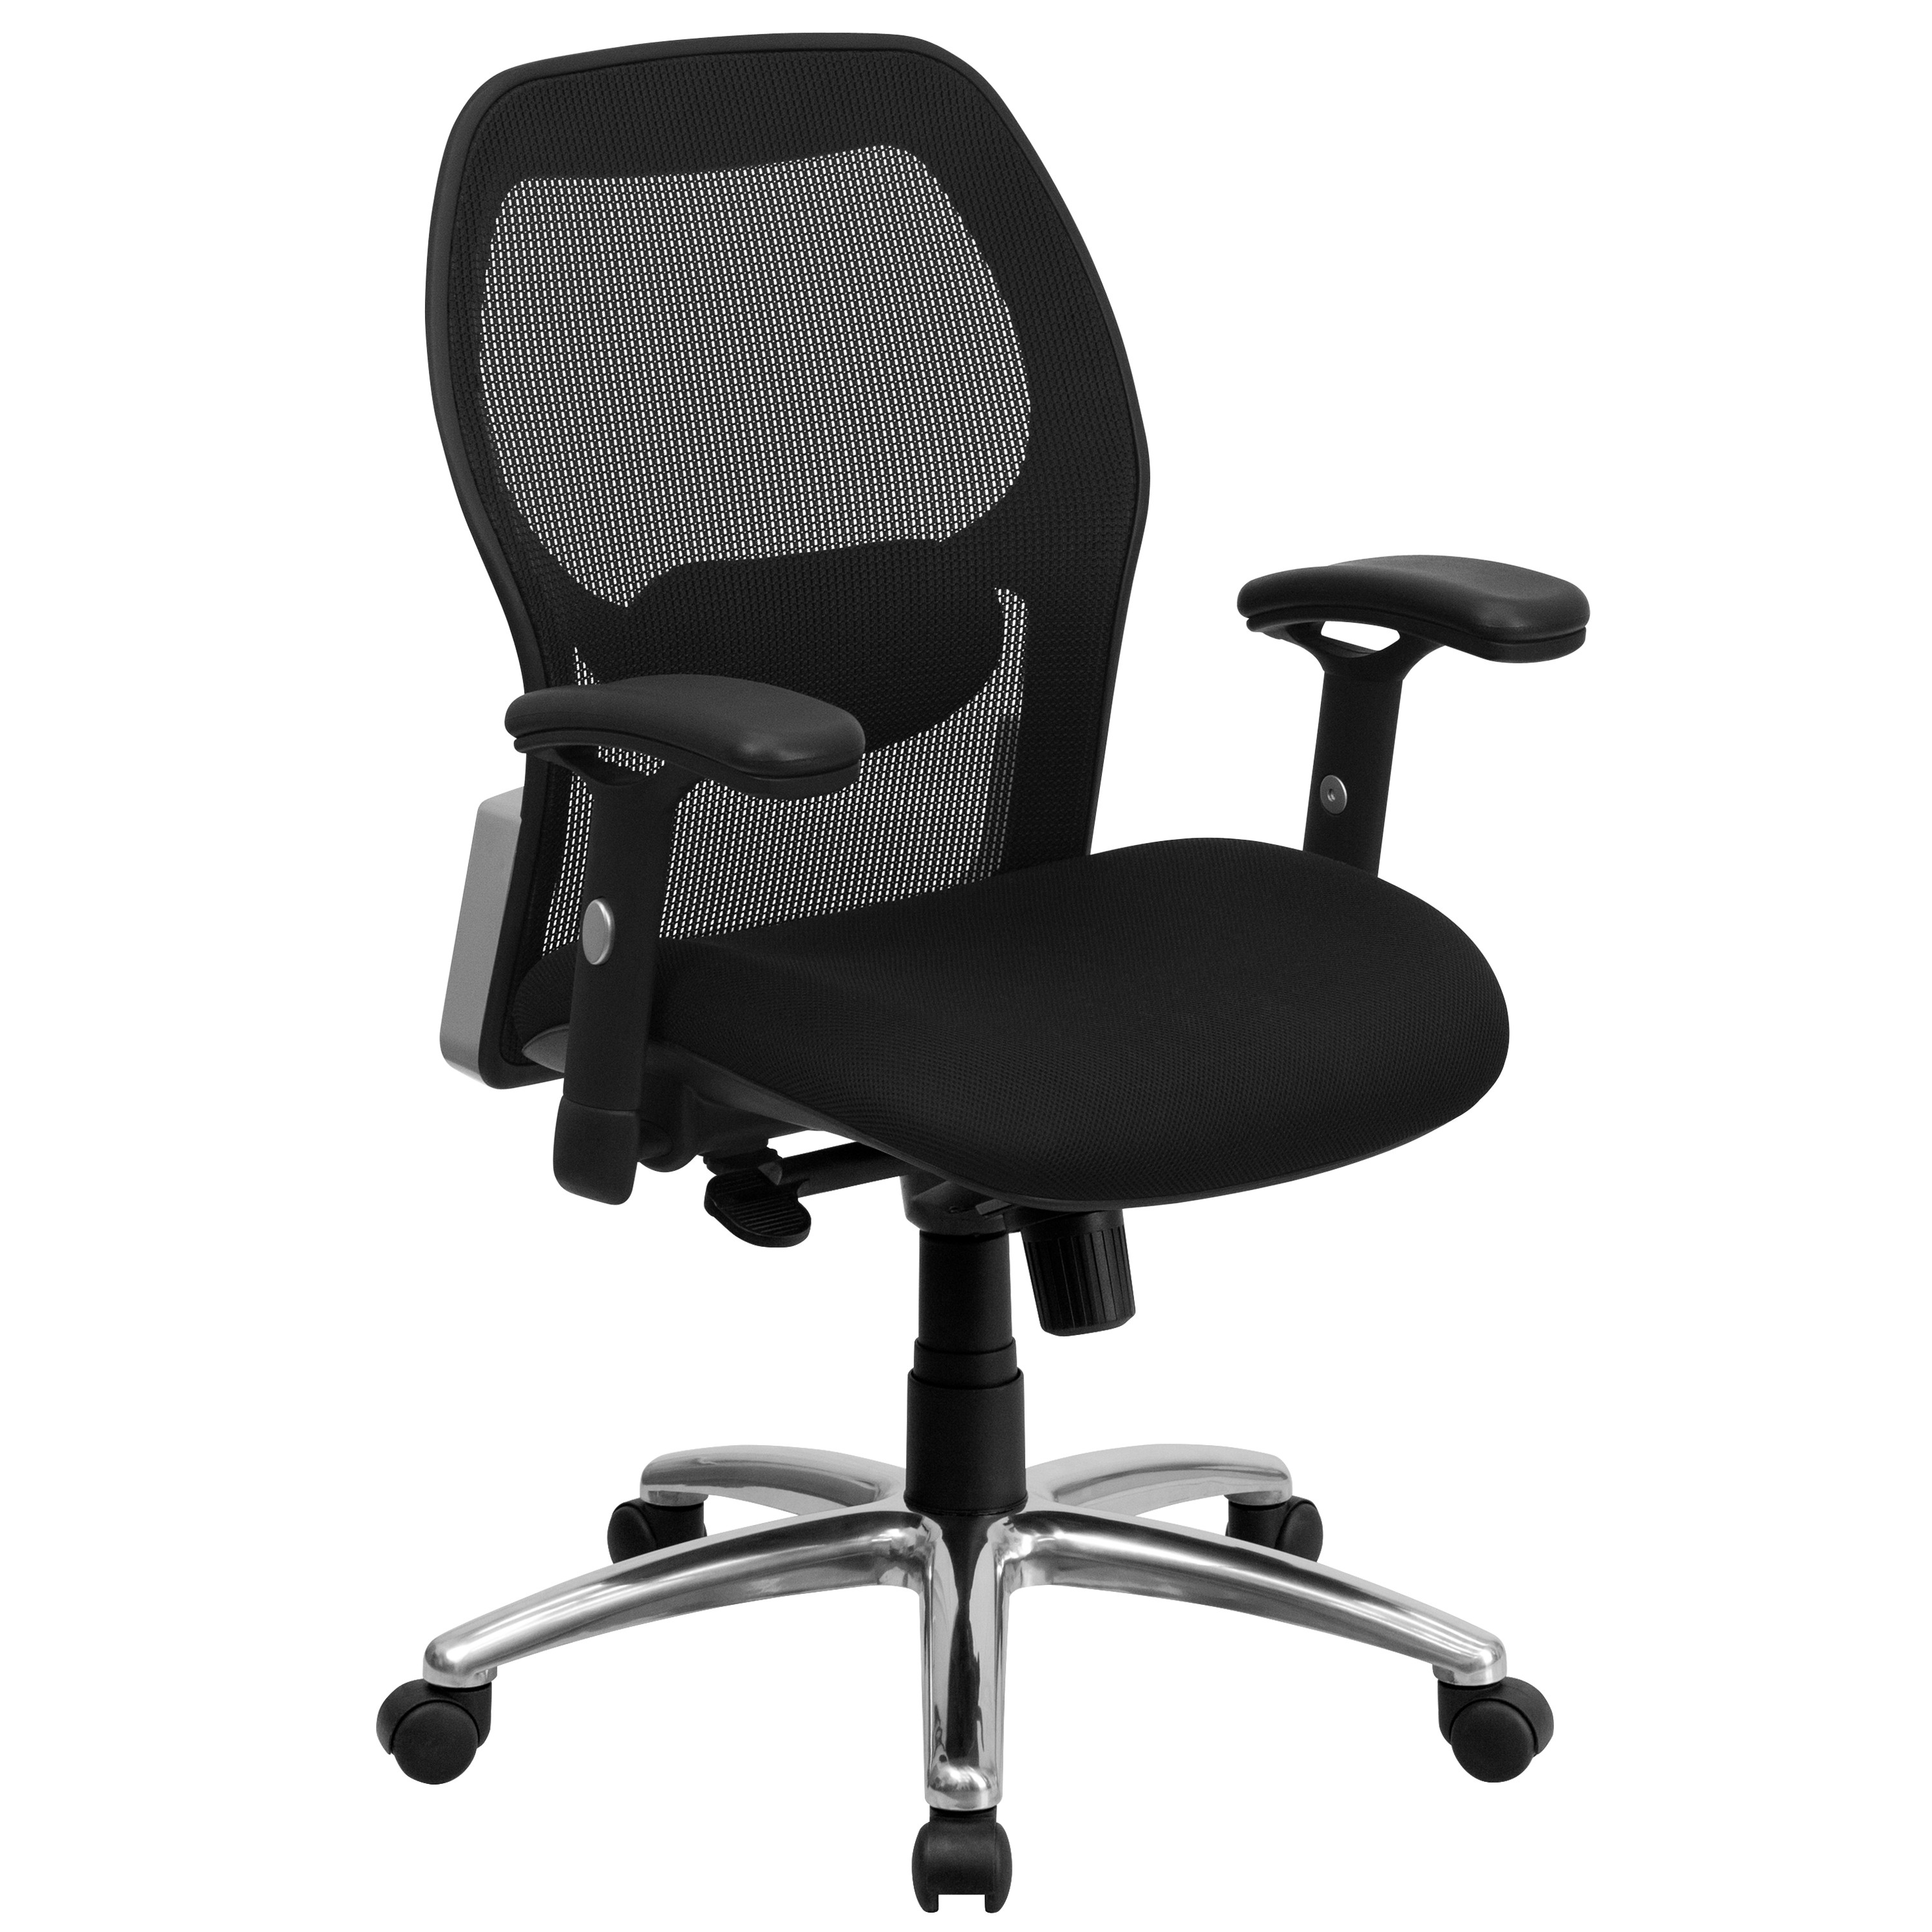 Back Super Fabric Mid Mfo Mesh And Chair Black Office Seat With Ibm6Yfy7vg